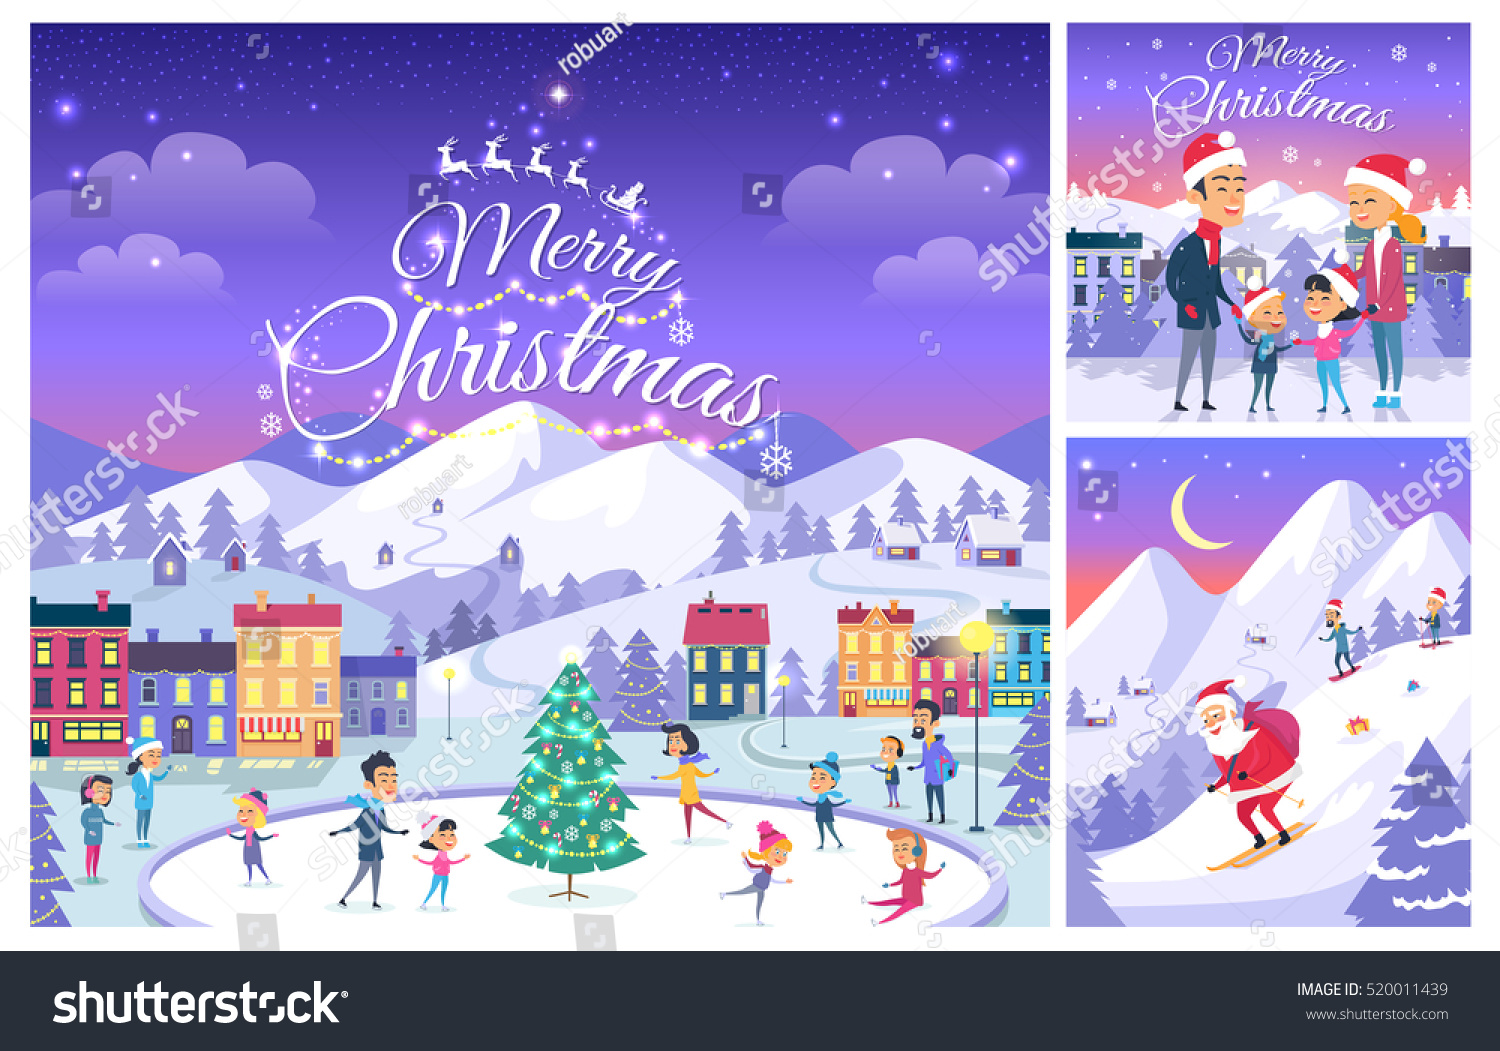 Merry Christmas Greeting Cards Design Celebration Stock Vector ...